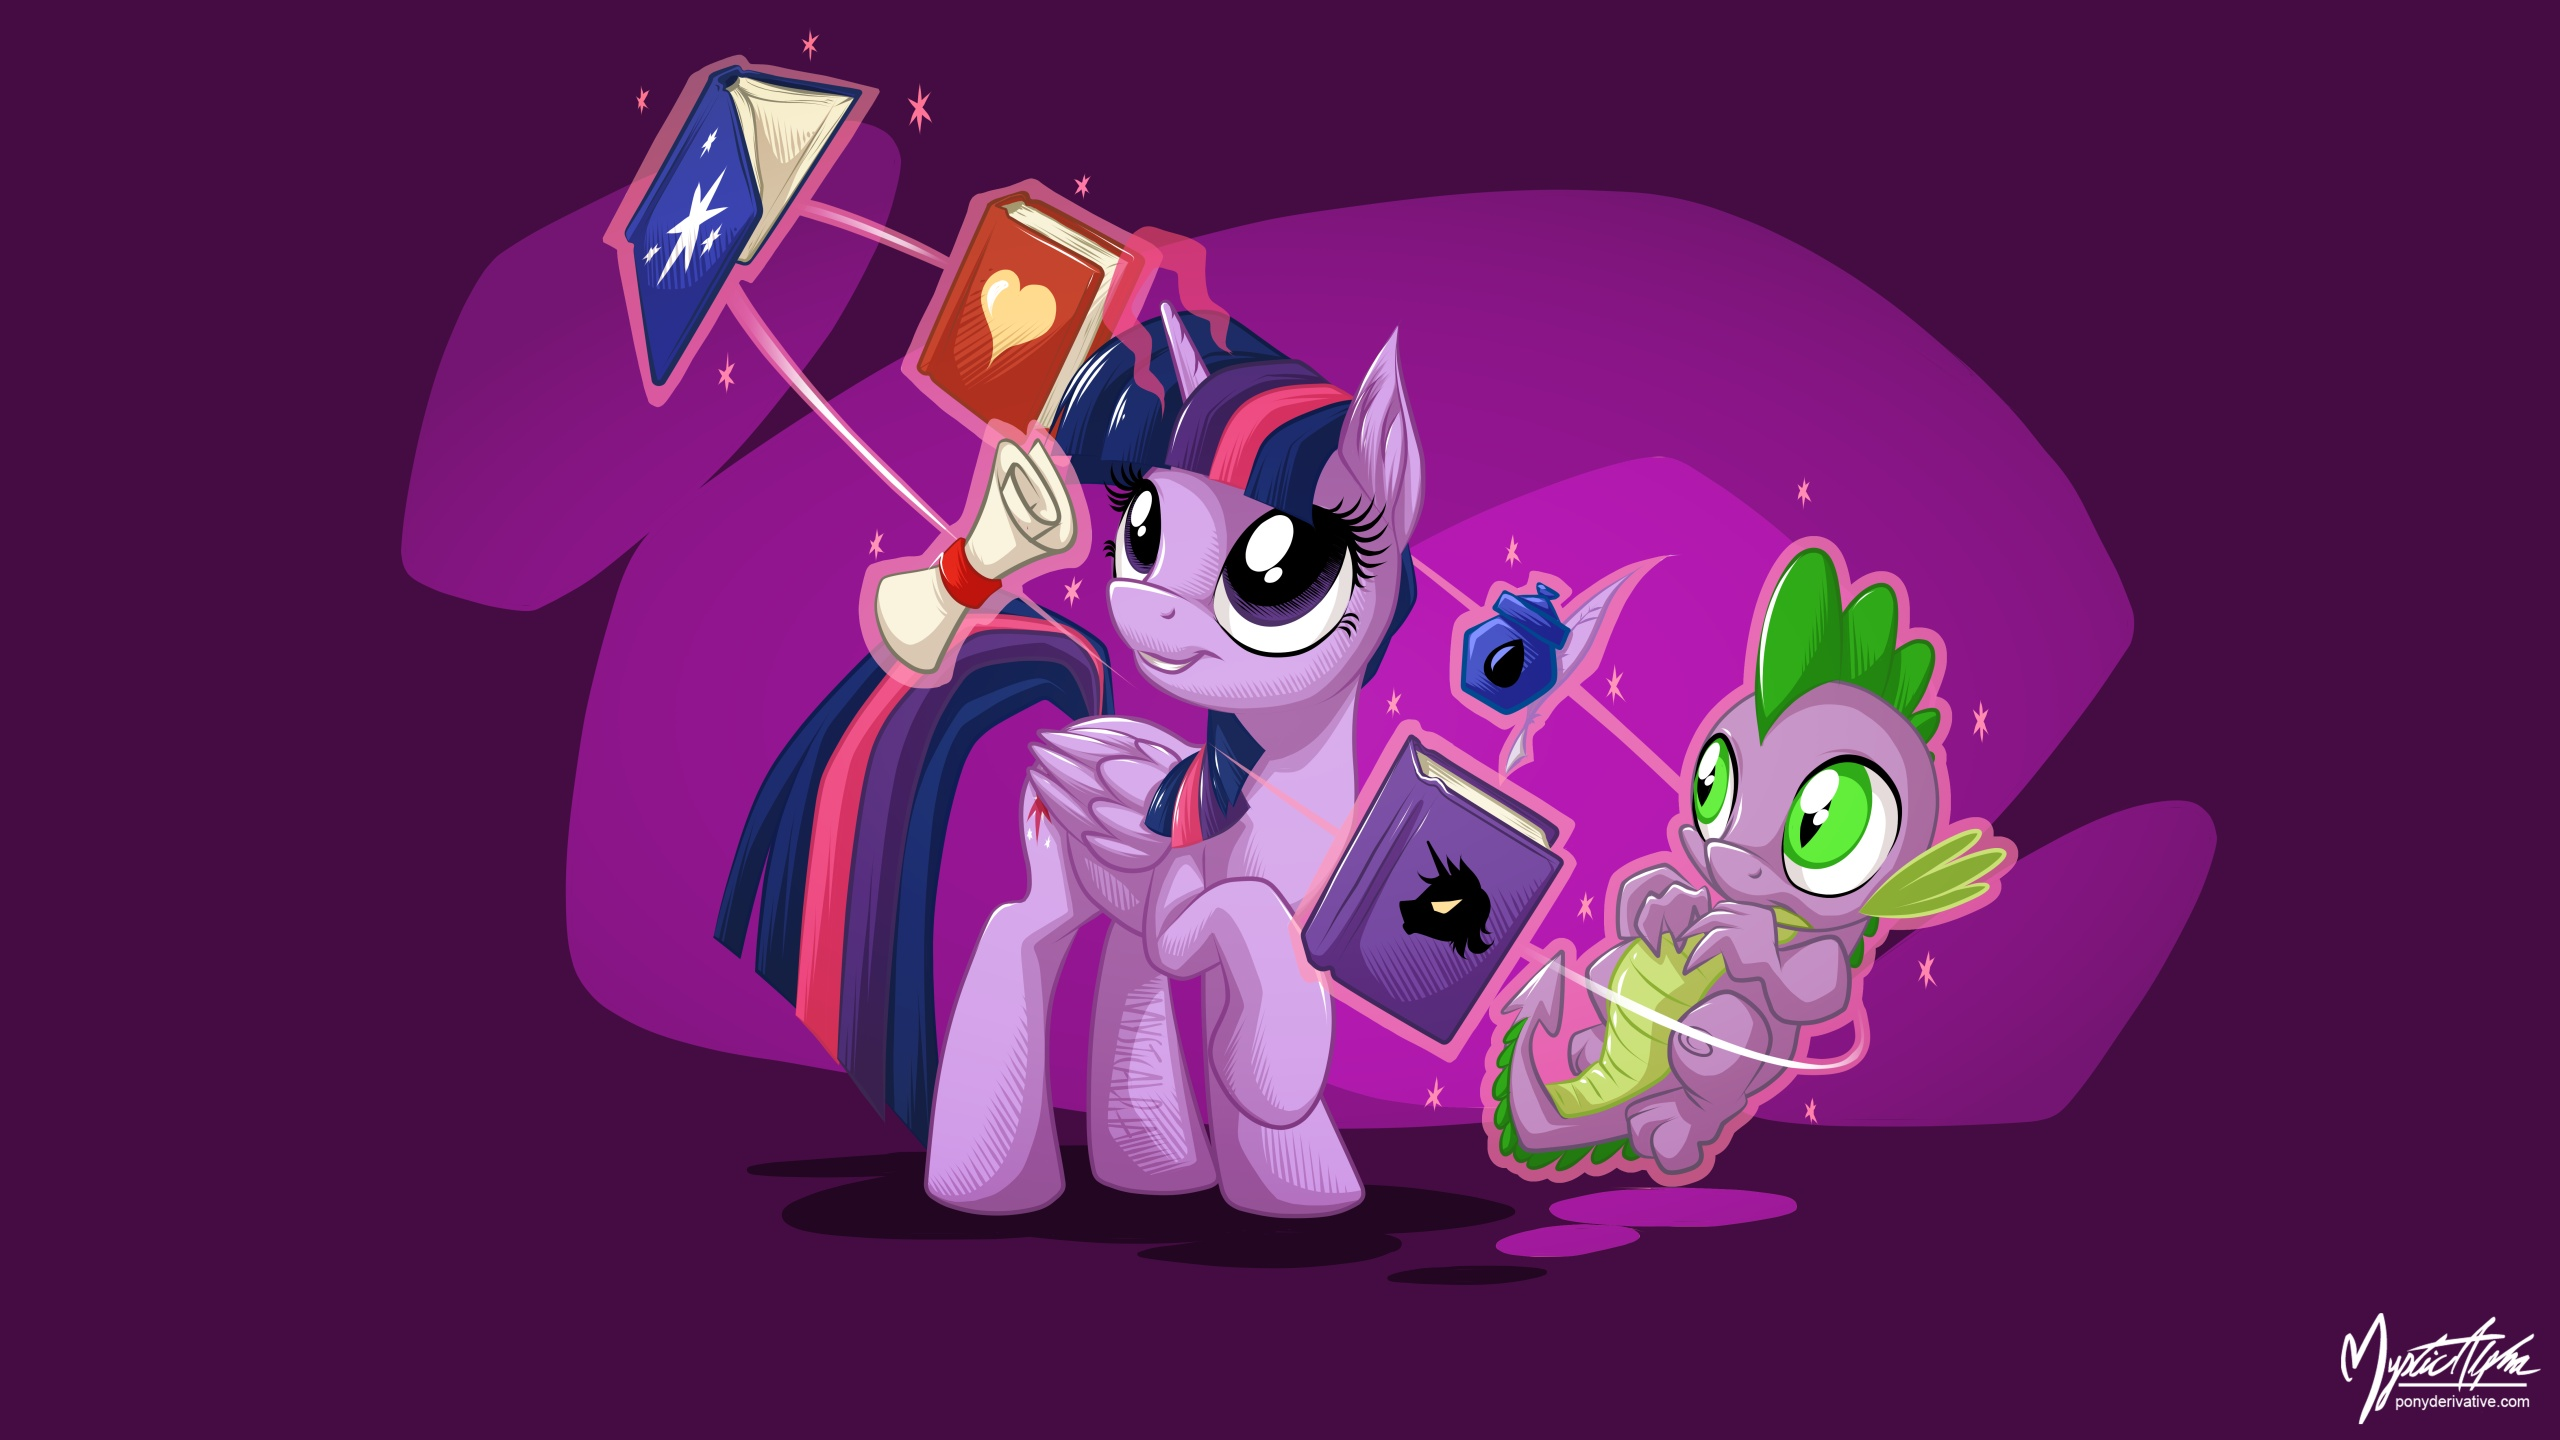 Twilight Sparkle and Spike 2 16:9 by mysticalpha